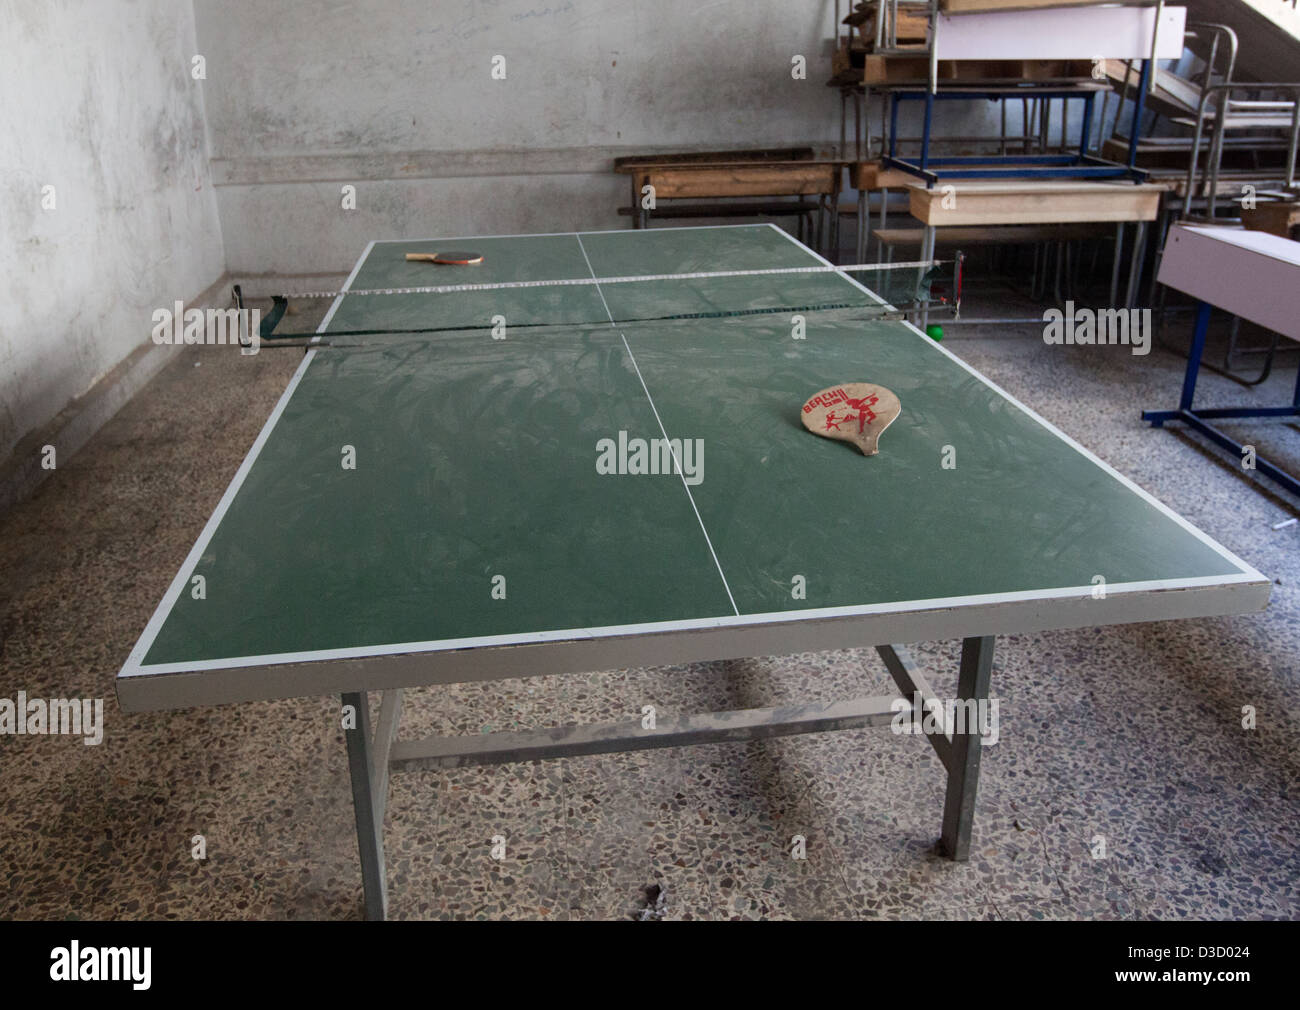 A Ping Pong Table In A Recreation Room At A Free Syrian Army Bomb Making  Factory In Aleppo, Syria On Dec. 2, 2012. Due To The La